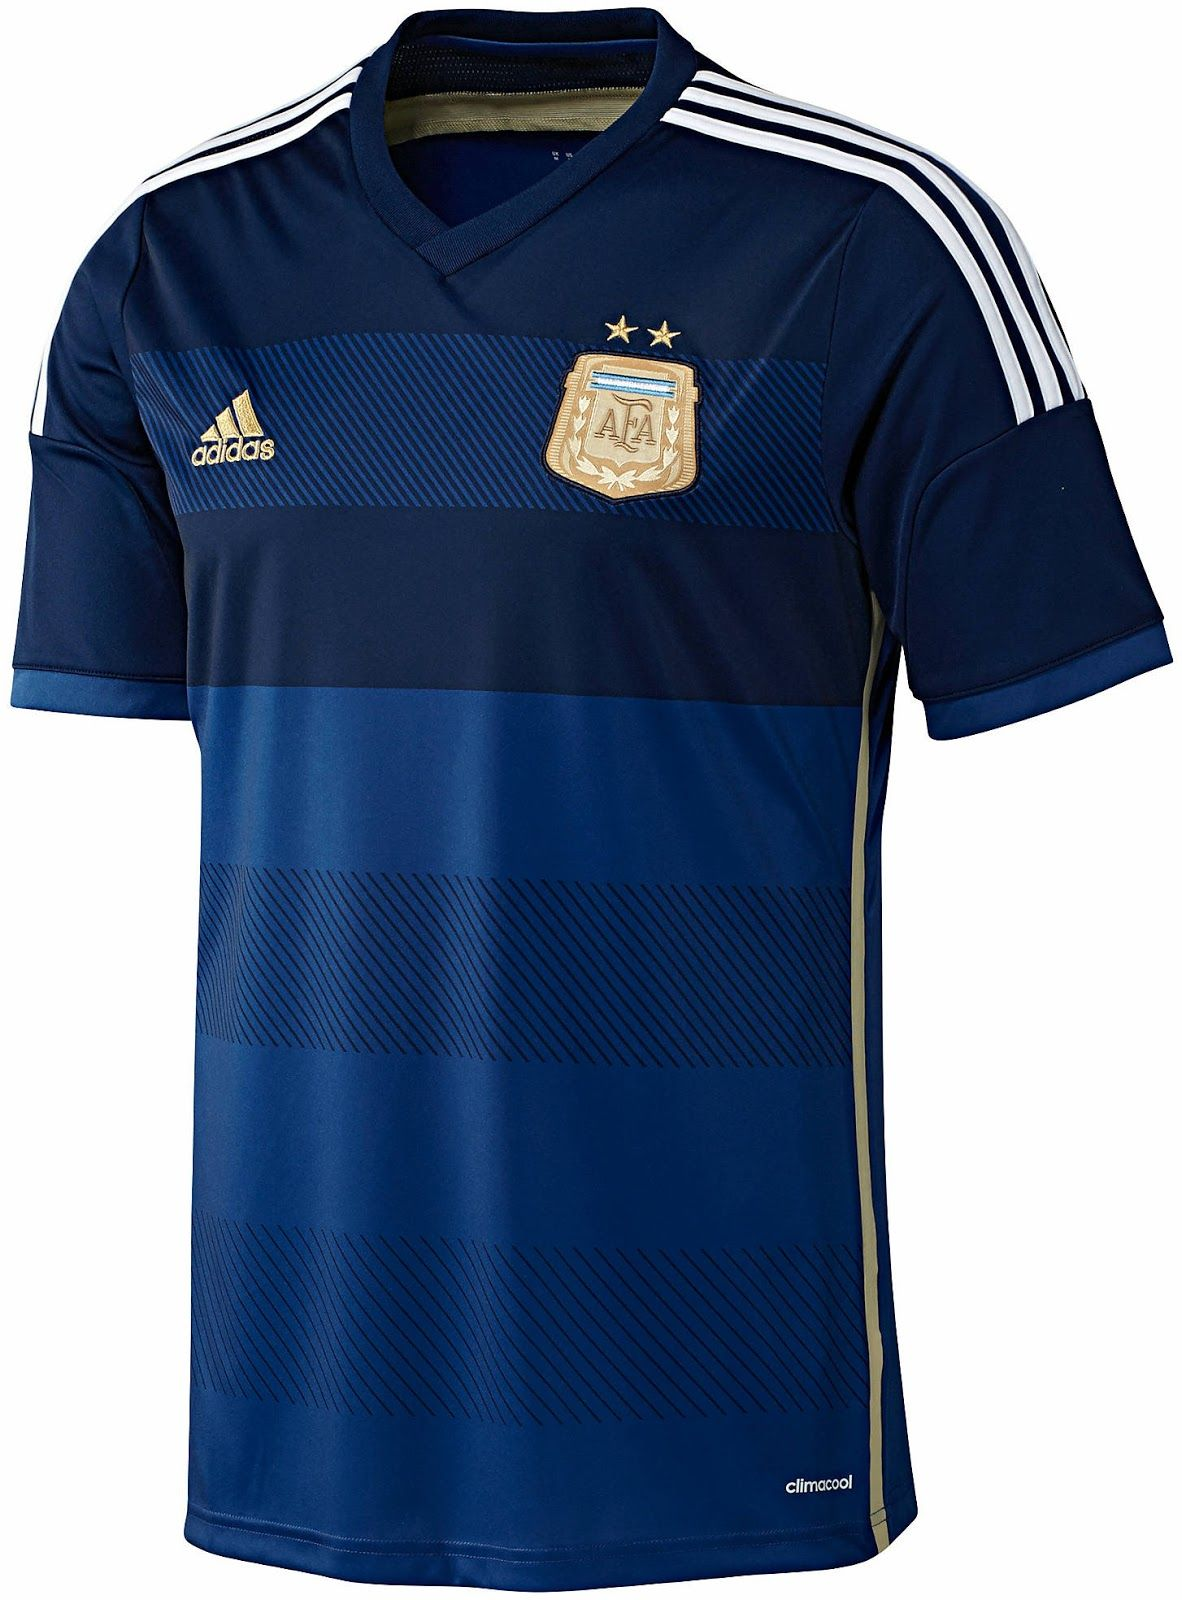 99942d3f529 world cup away kit this pic shows the new argentina 2014 world cup ...